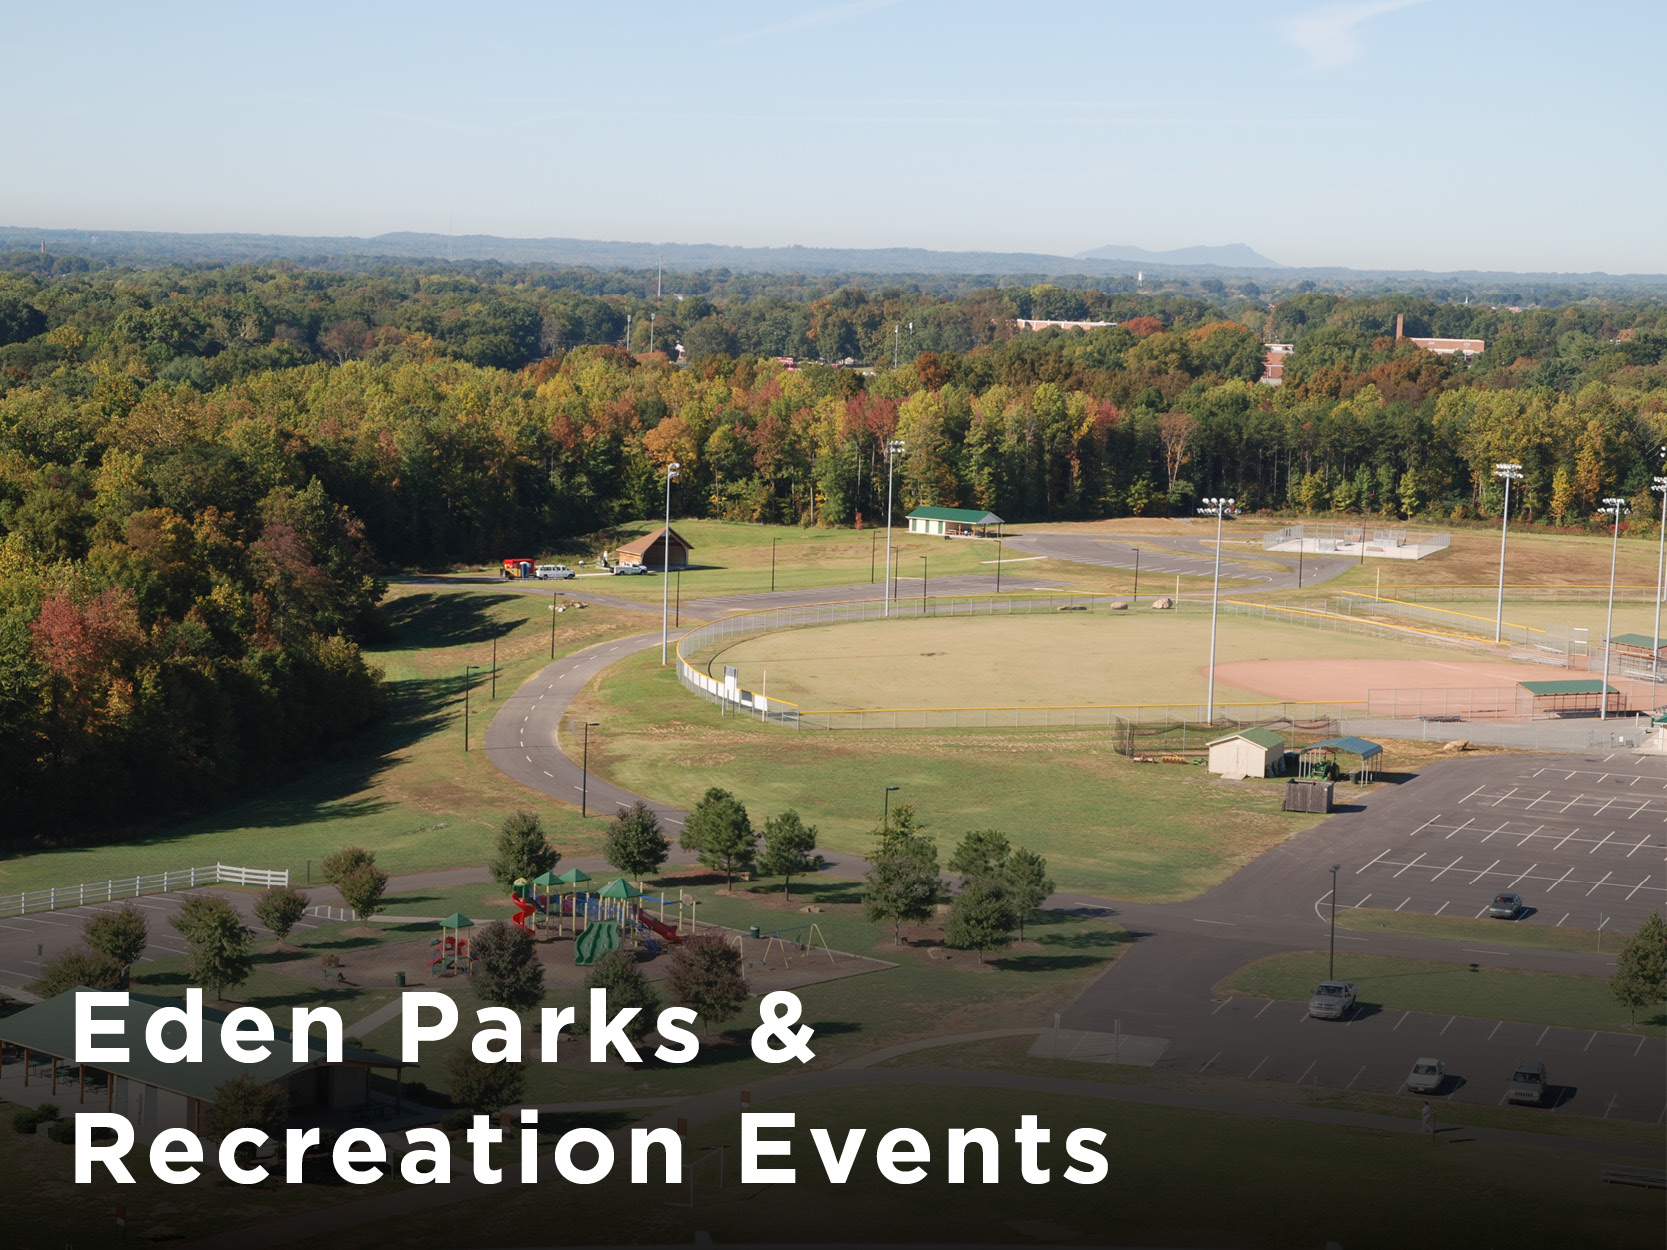 Eden Parks and Recreation Events